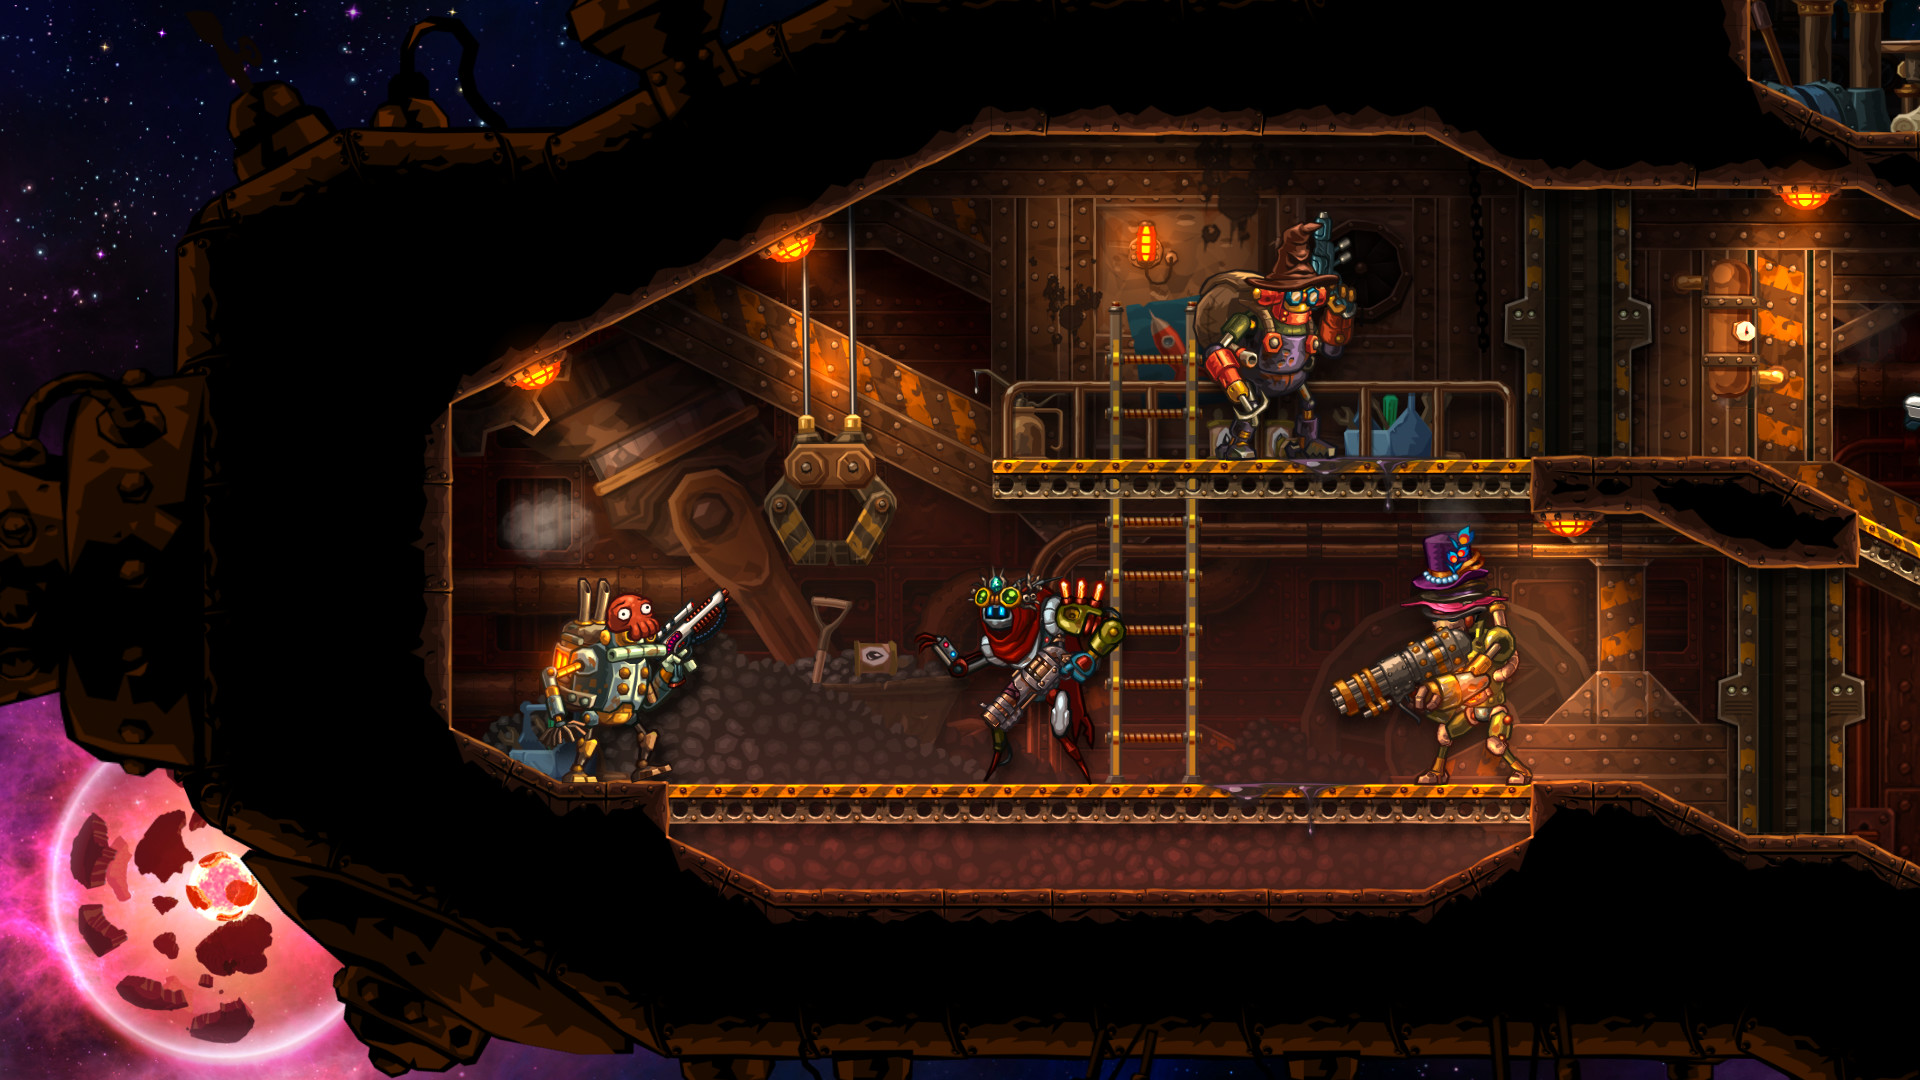 Hatbox: Hatful Eight + 2 (SteamWorld Heist) screenshot